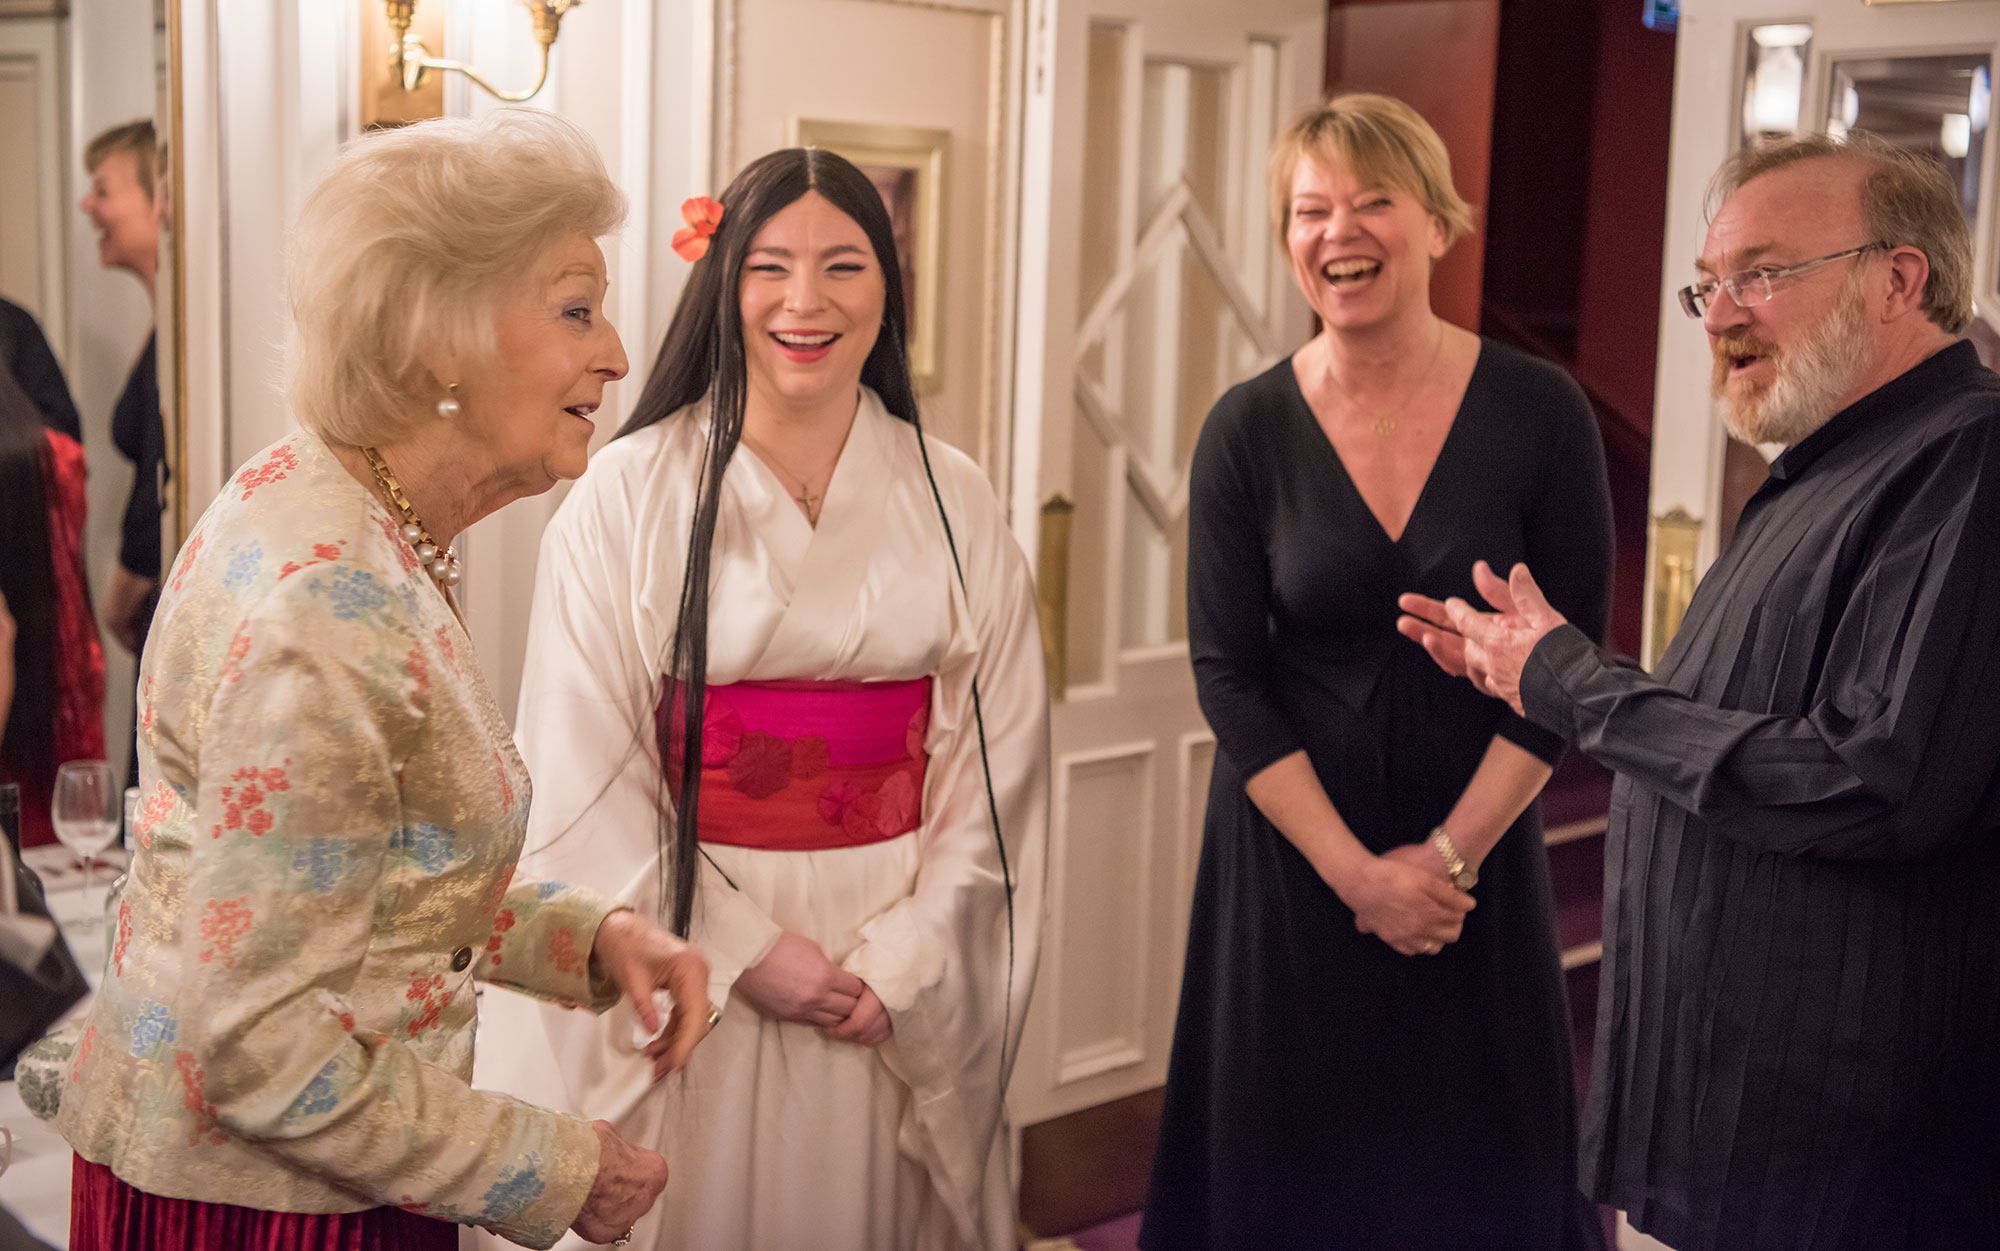 Princess Alexandra with Soprano Natalya Romaniw following her performance in the title role of Madam Butterfly, ENO Company Manager Nicole Richardson and Music Director Martyn Brabbins, who conducted this production © Genevieve Girling